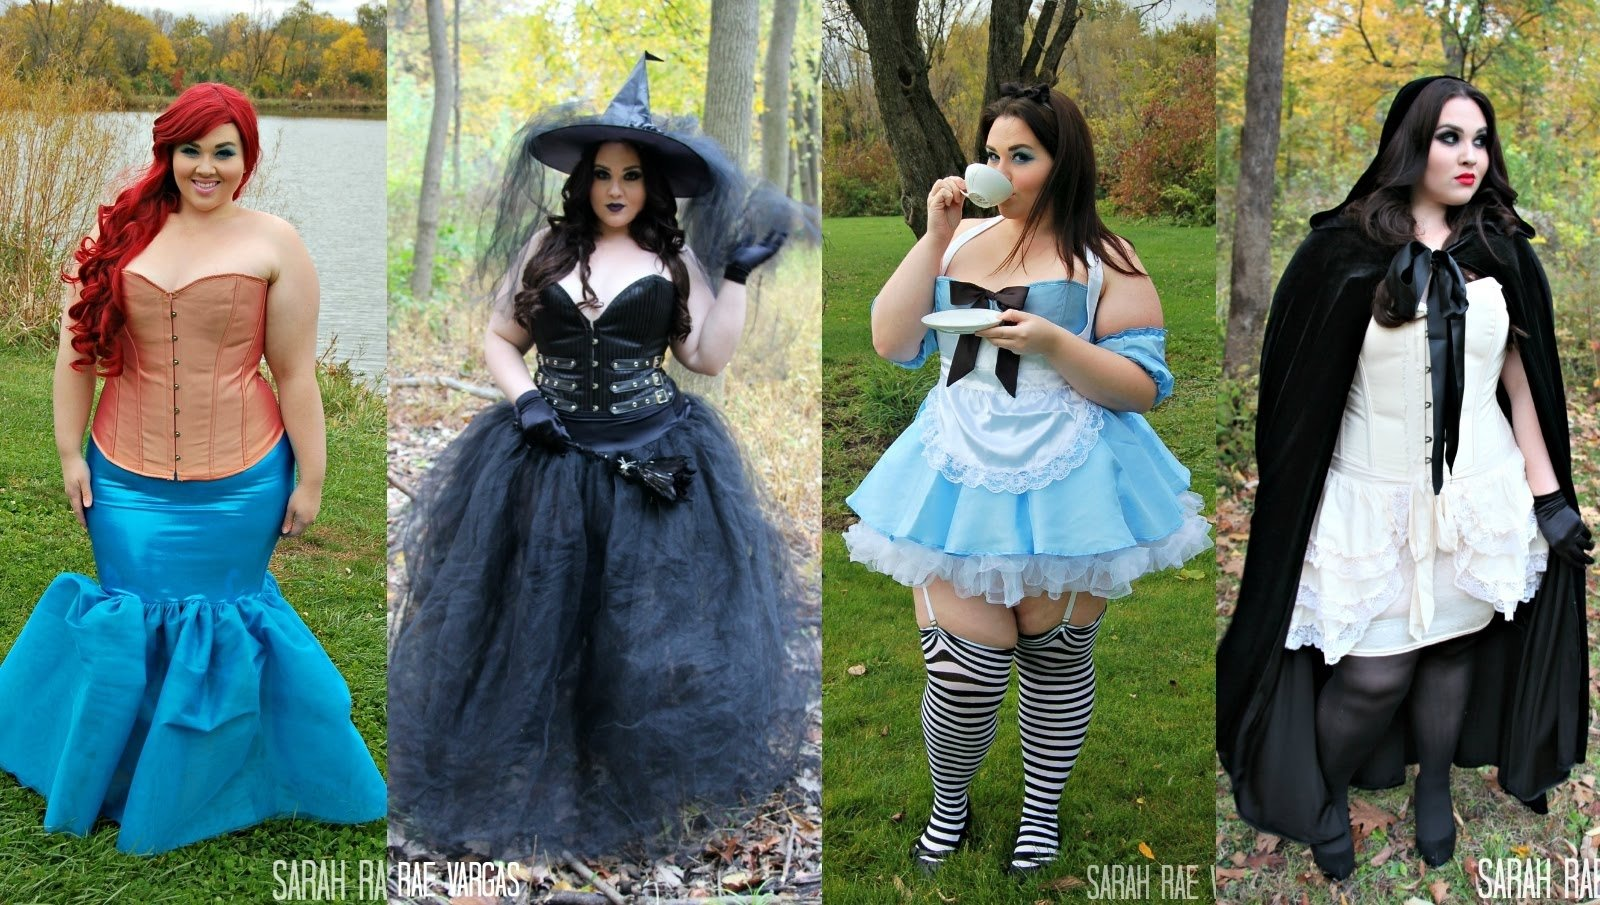 10 Great Homemade Plus Size Halloween Costume Ideas 57 halloween costume ideas for plus size women homemade sexy 4 2021